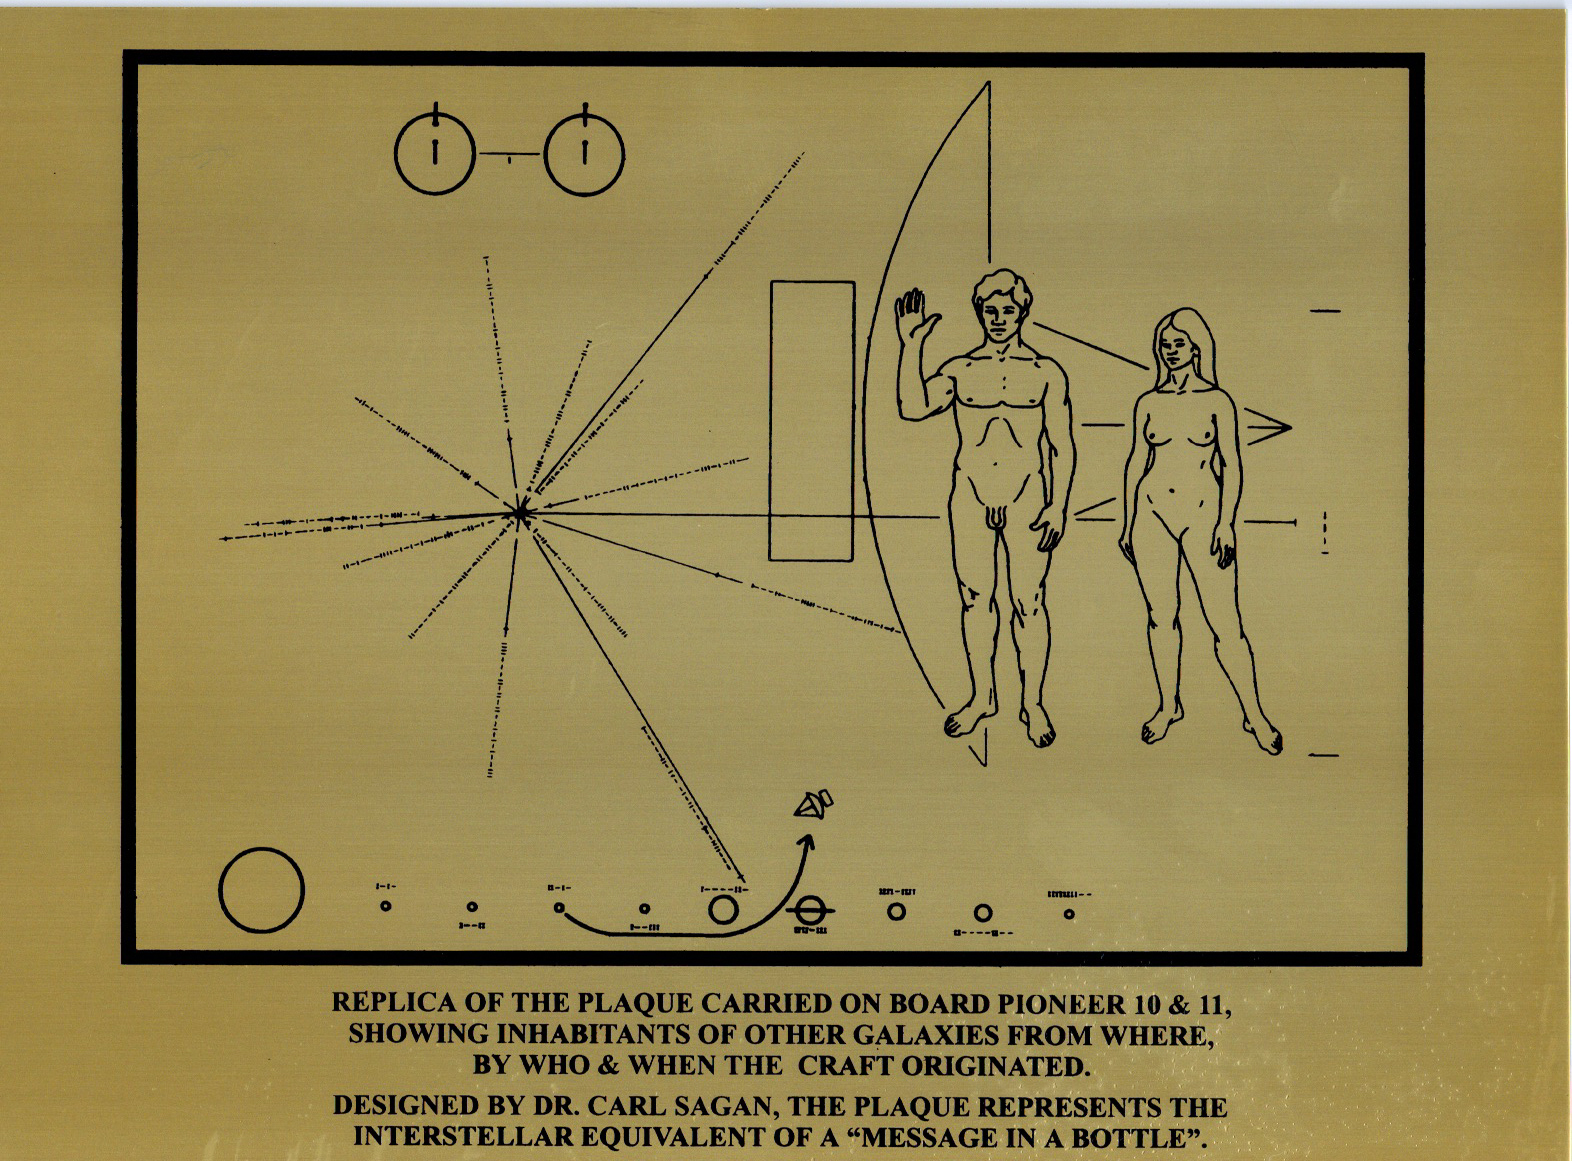 space probe pioneer 10 plaque - photo #7